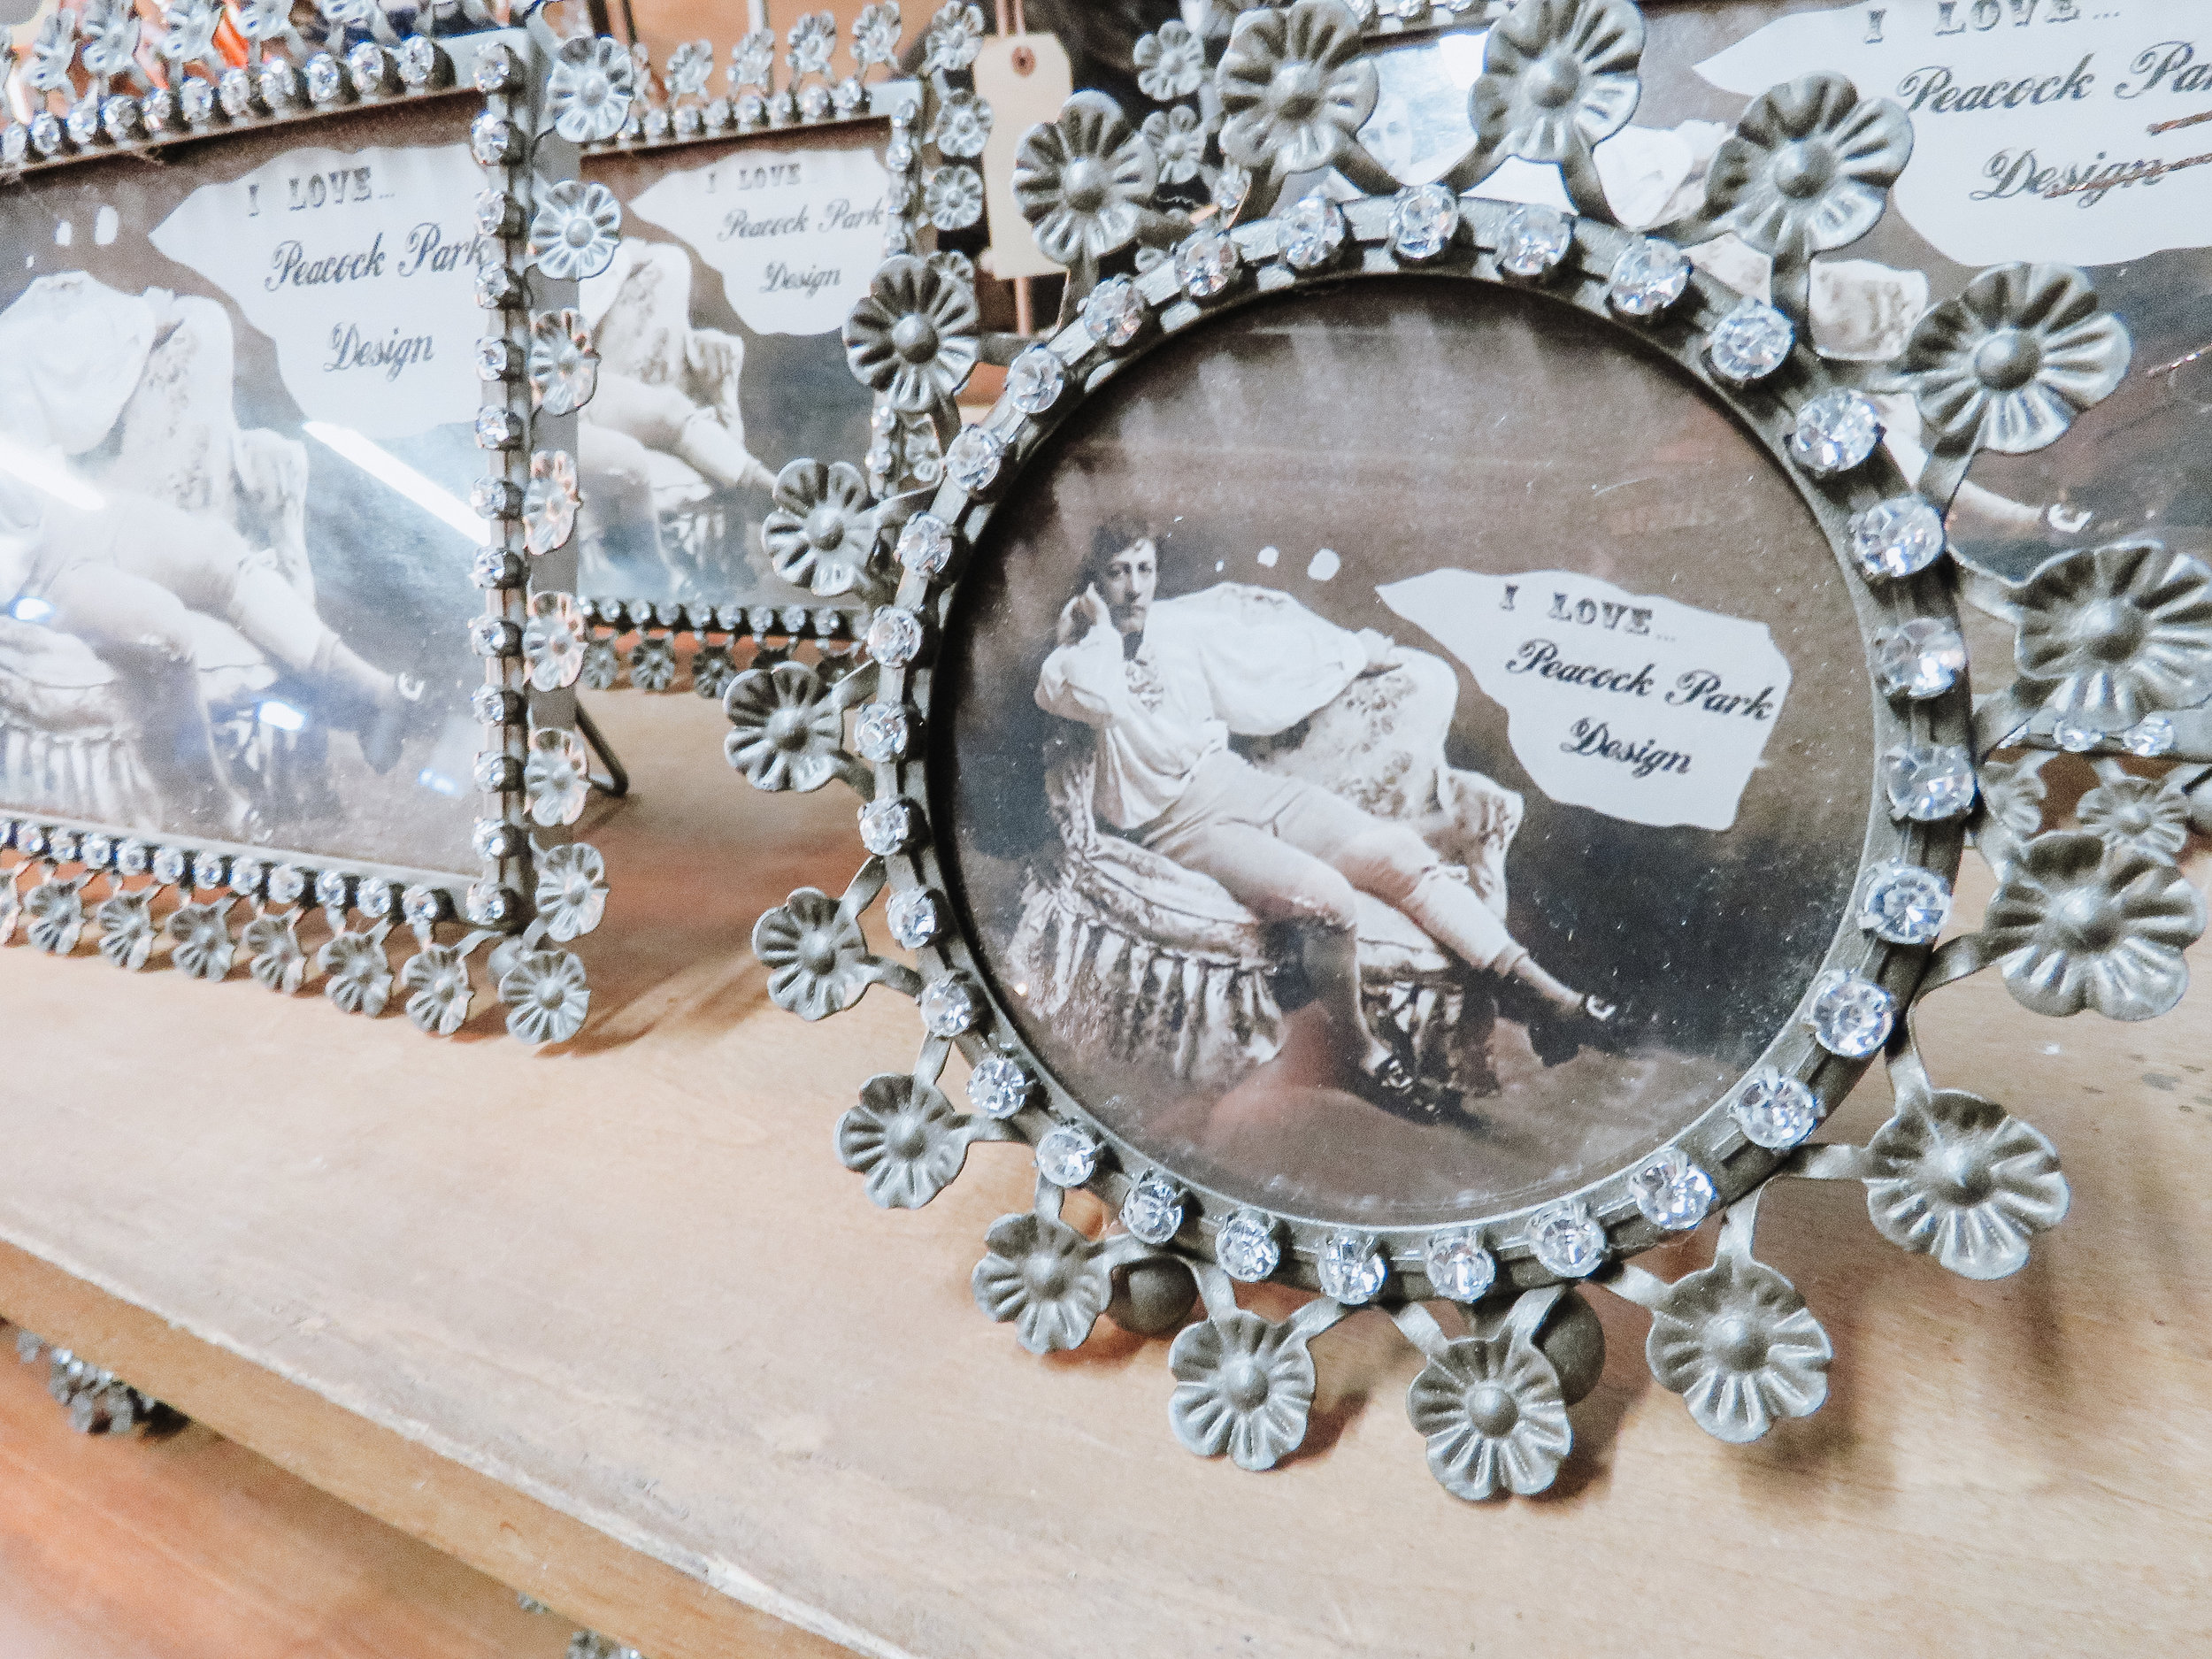 Photos - These fun vintage-style frames make a great stocking stuffer! Framing a sentimental photo for your loved ones is sure to be a great and memorable gift.